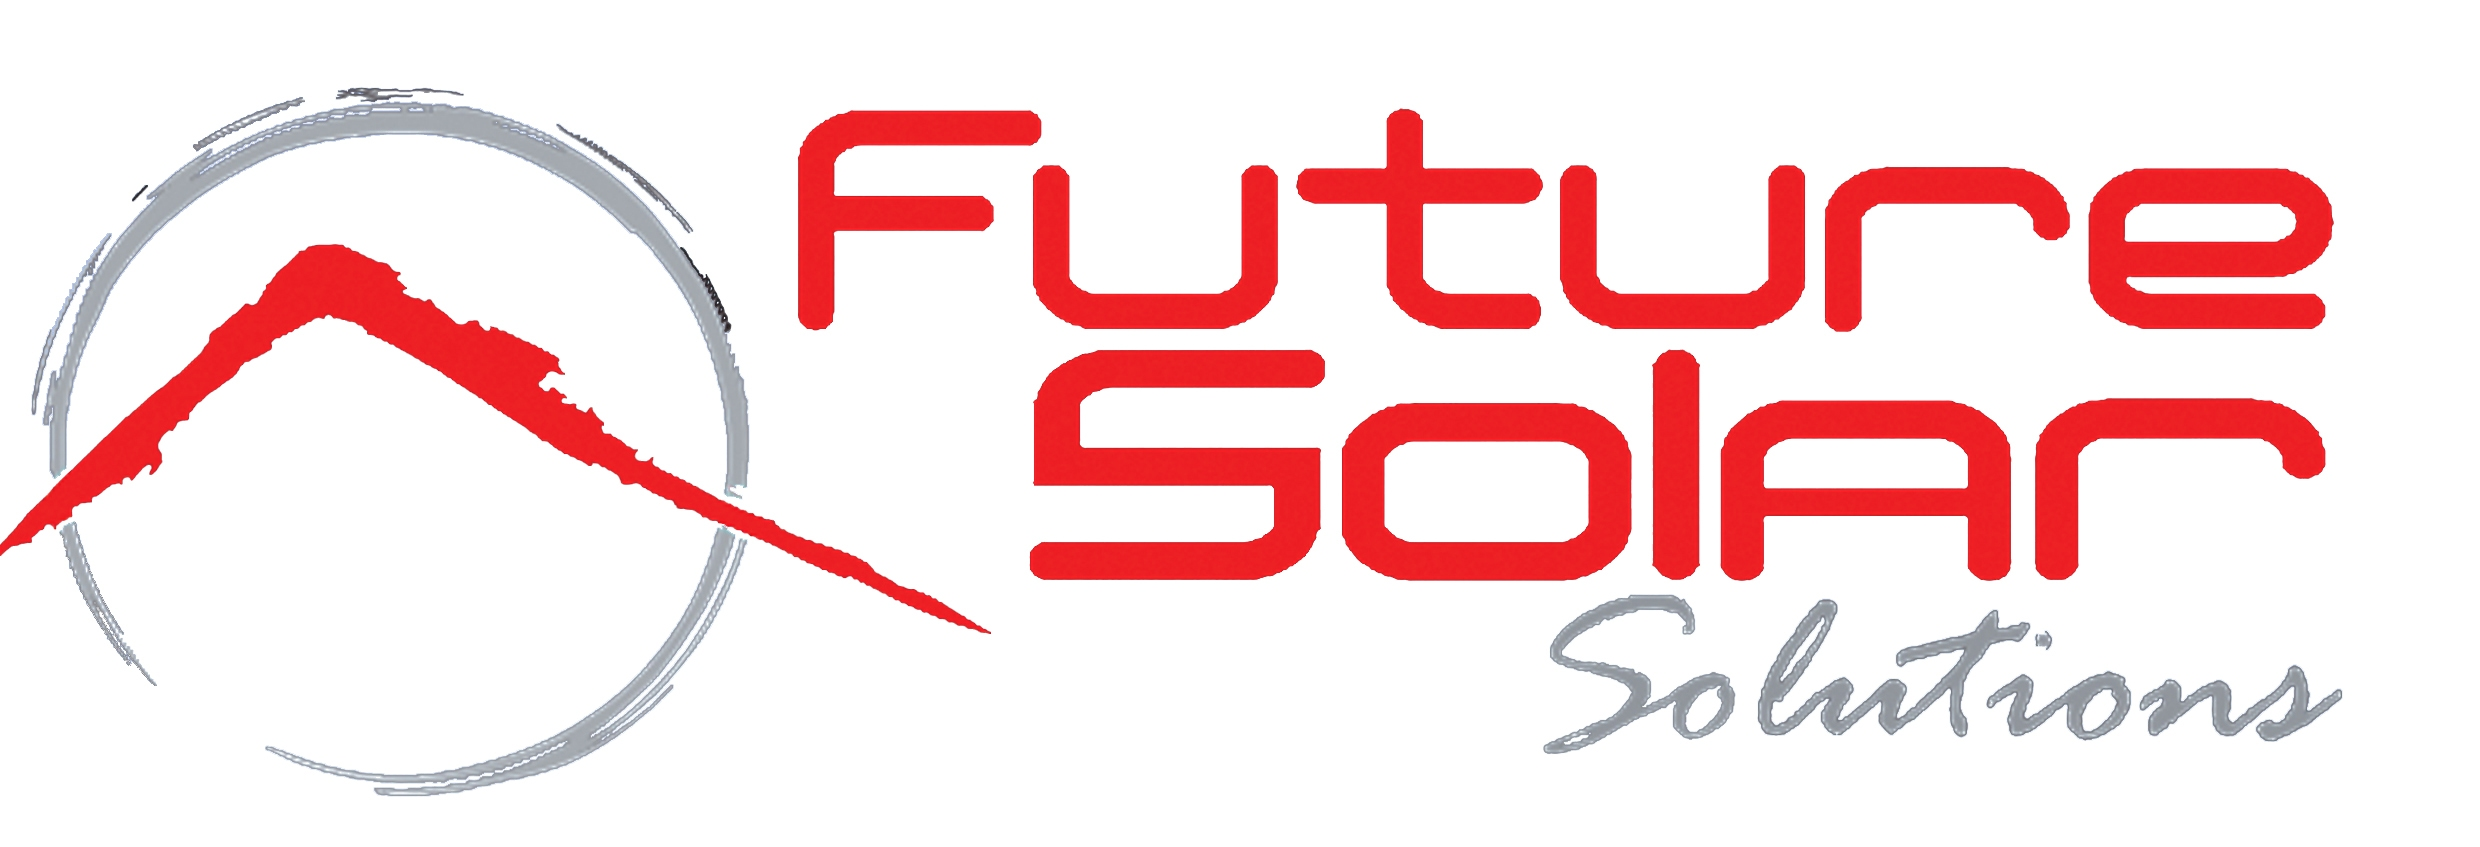 Future Roofing Solutions Pty Ltd